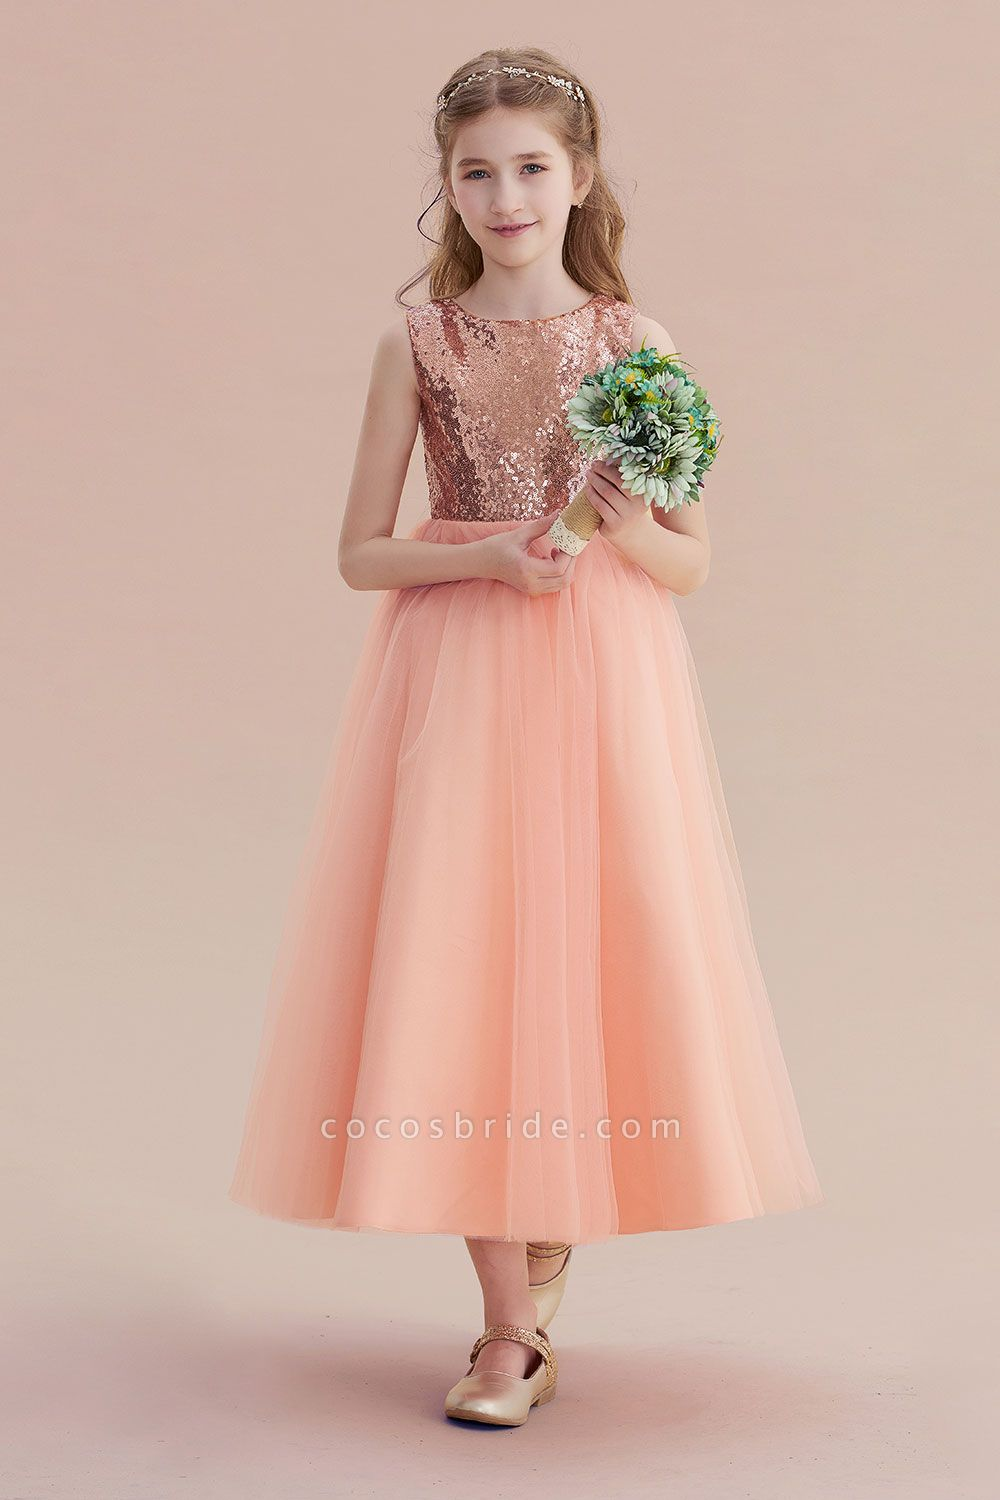 Graceful Sequins Tulle A-line Flower Girl Dress